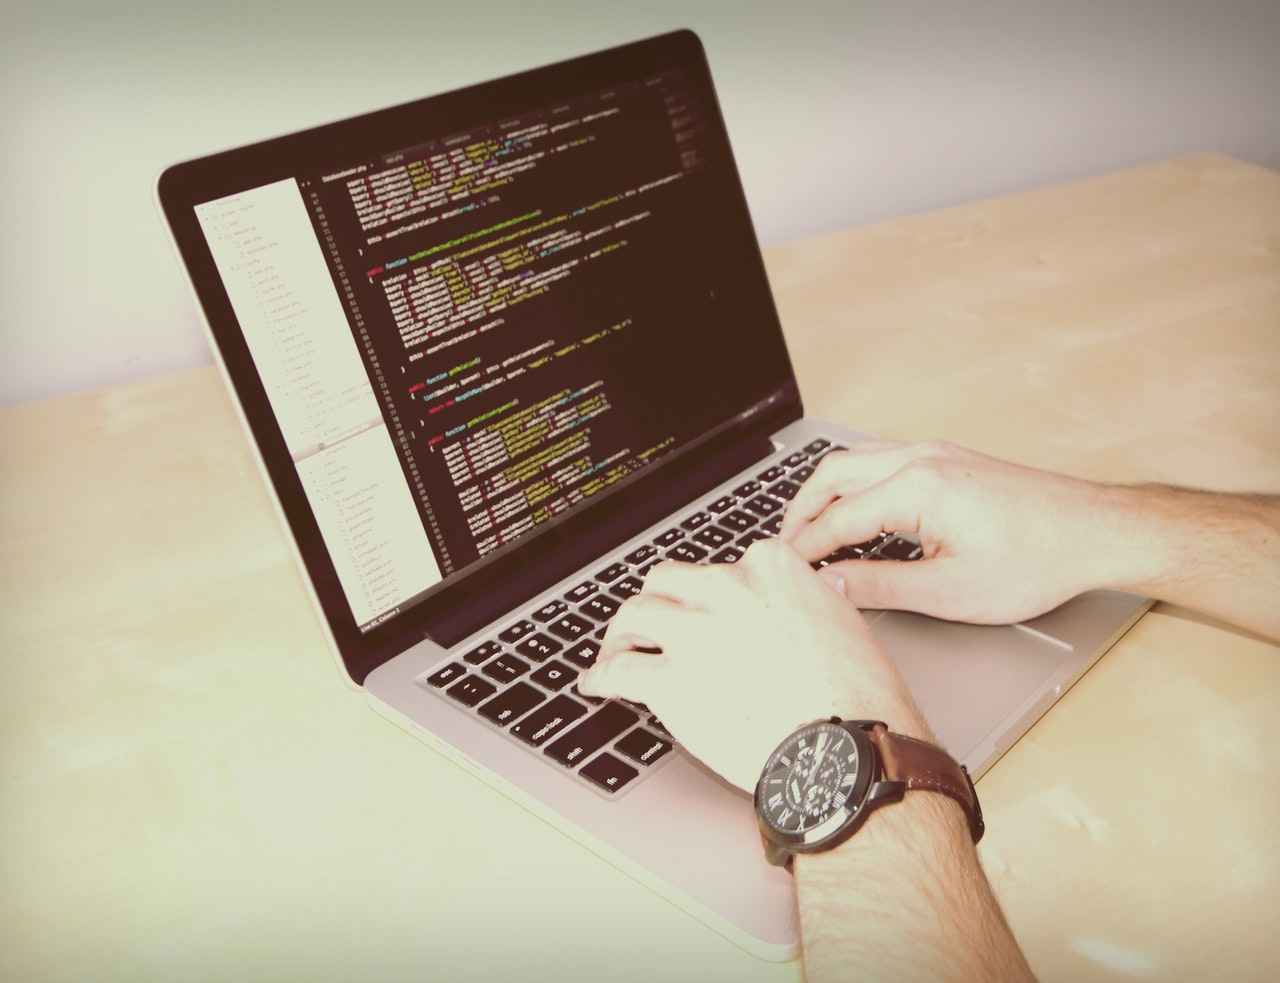 5 programming Terms You Need to Know